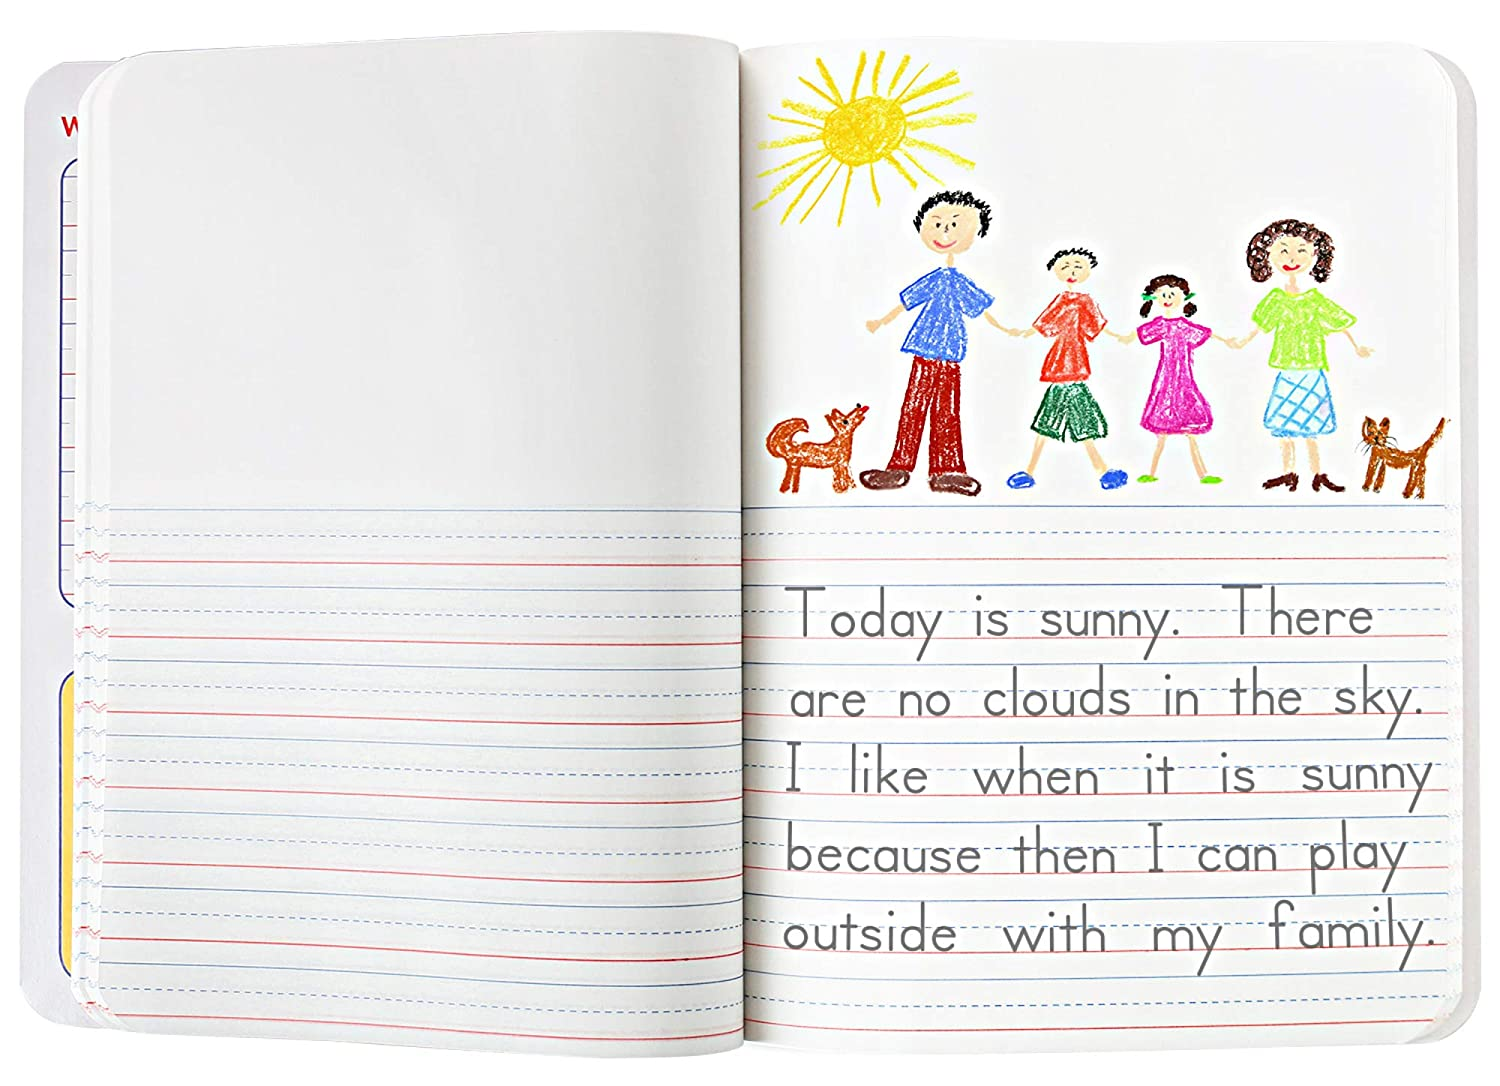 Creative Story Notebooks For Kids 9 3//4 in by 7 1//2 in. 200 Pages Mead Primary Journal Kindergarten Writing Tablet 12 PACK of Primary Composition Notebook For Grades K- 2 100 Sheets